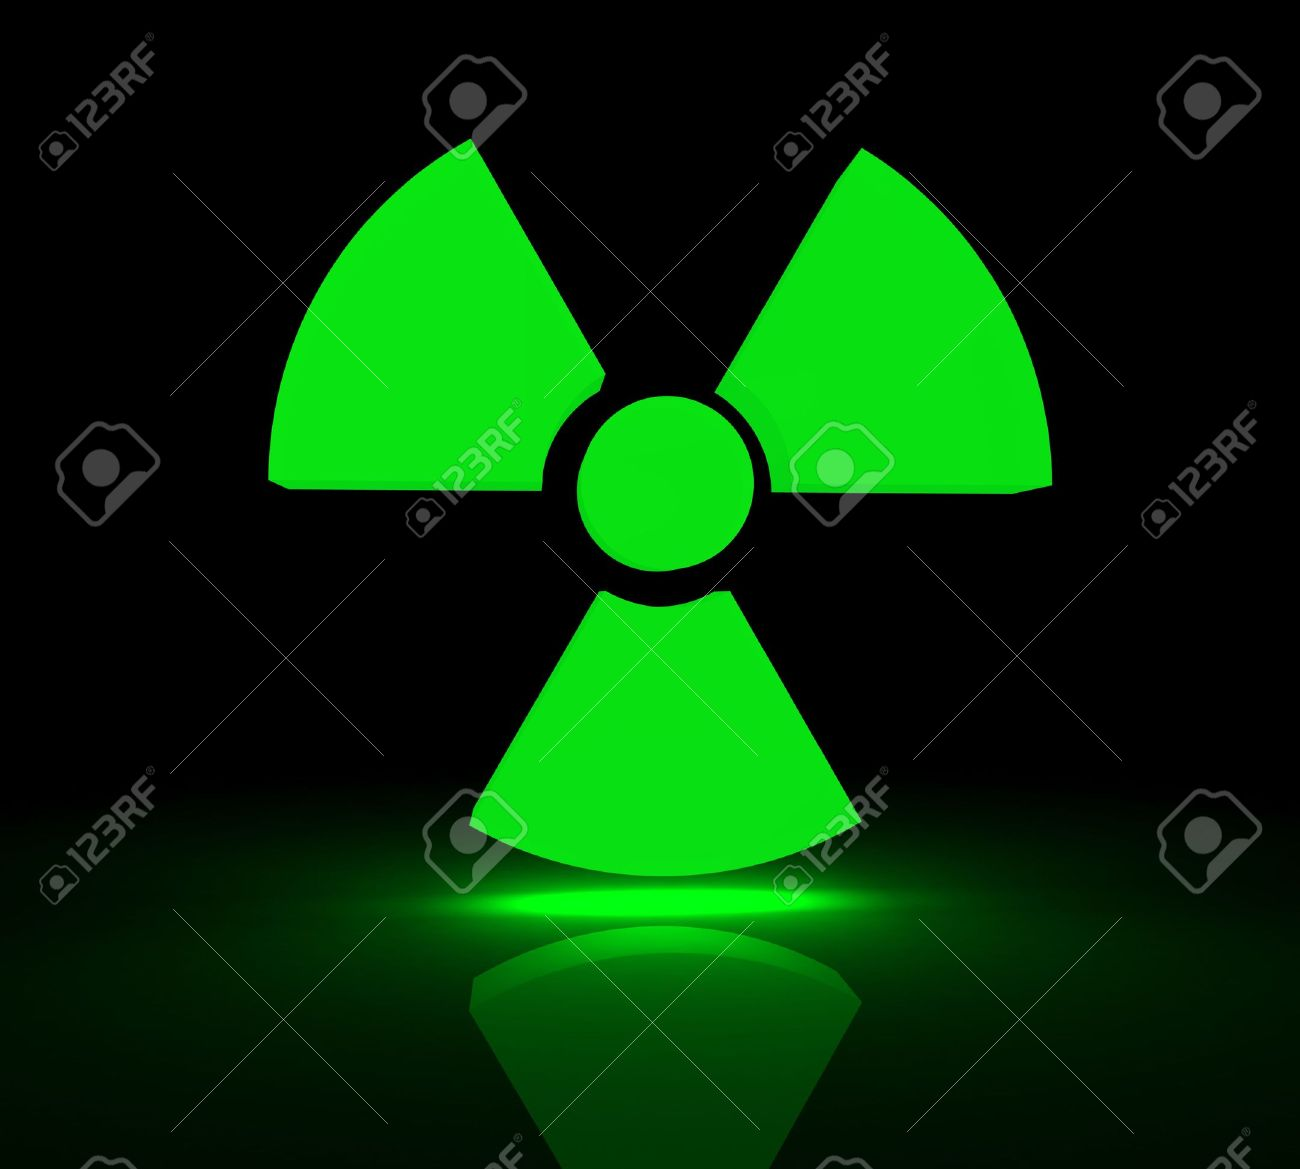 Glowing symbol for radioactive substances. 3d render. Stock Photo - 2831420